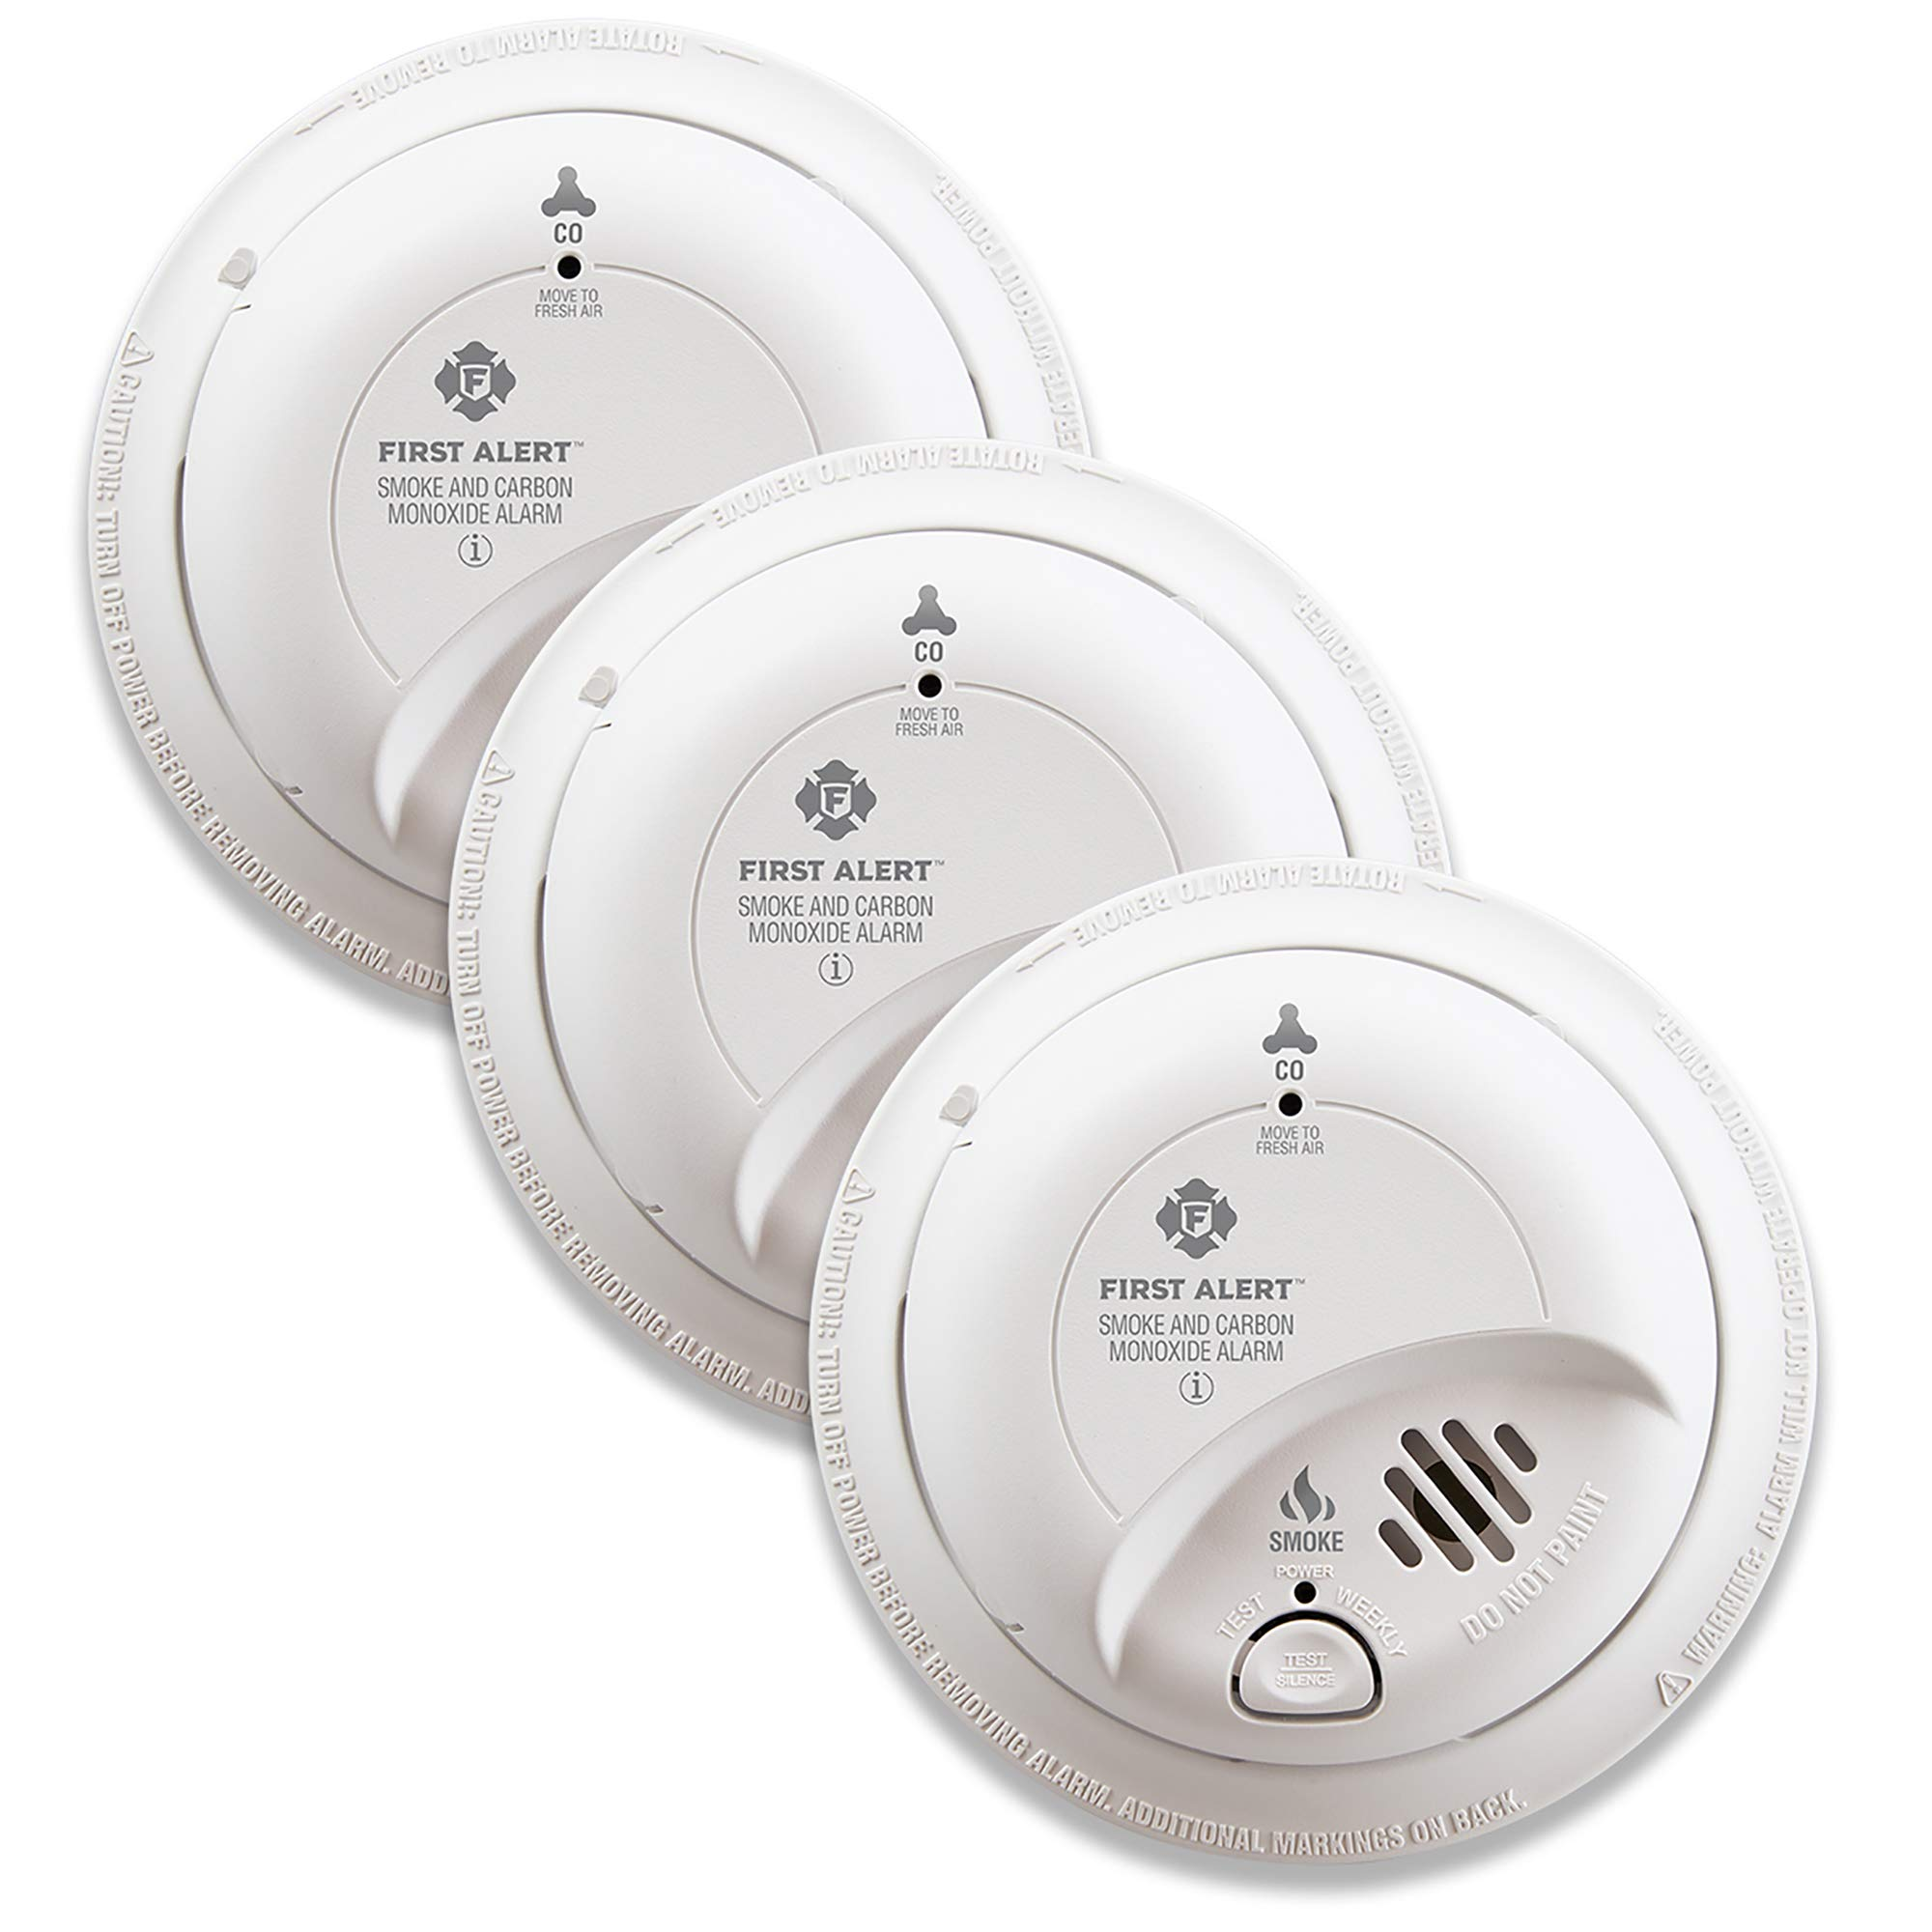 First Alert BRK SC9120B-3 Hardwired Smoke and Carbon Monoxide (CO) Detector with Battery Backup, 3 Pack by First Alert